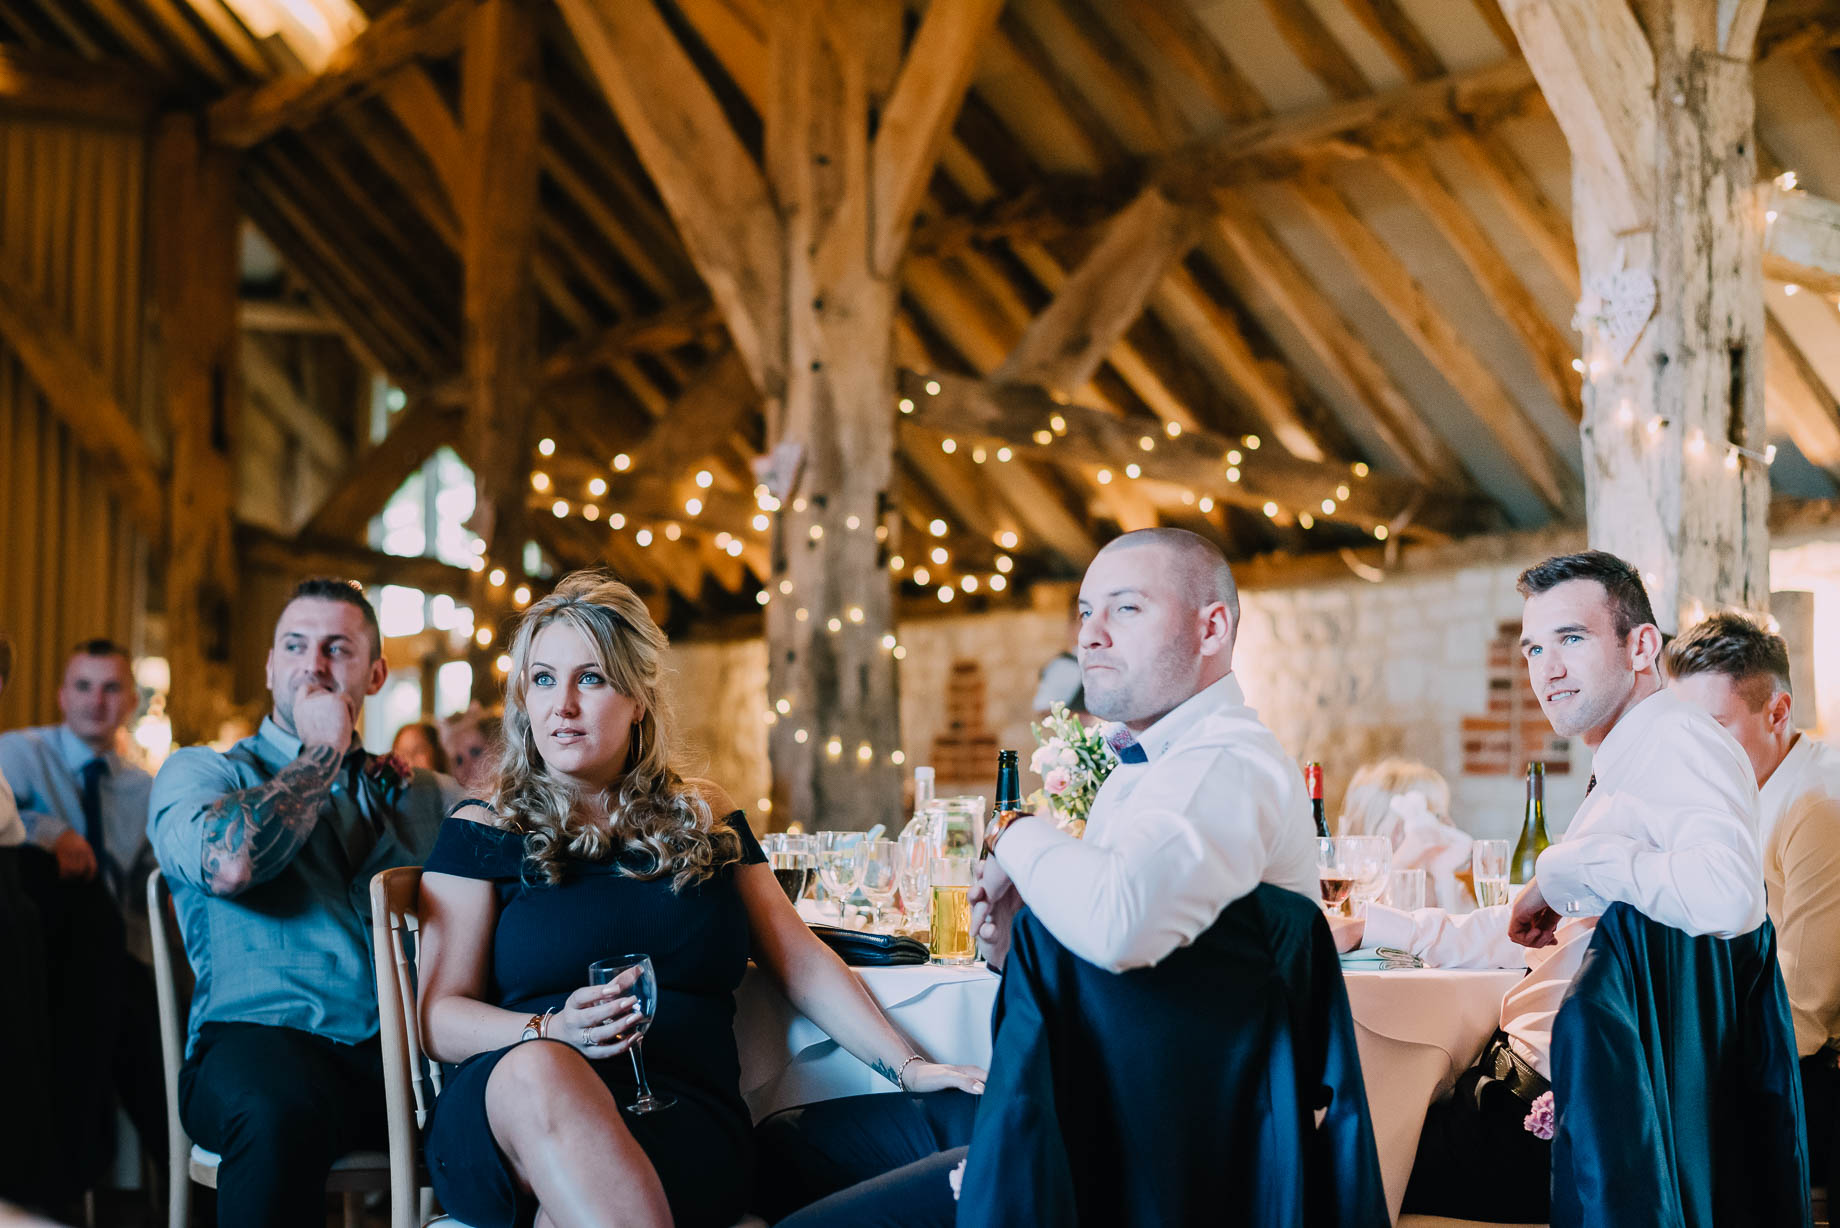 Bury Court Barn wedding photography - Guy Collier - Kate and Russ (137 of 187)